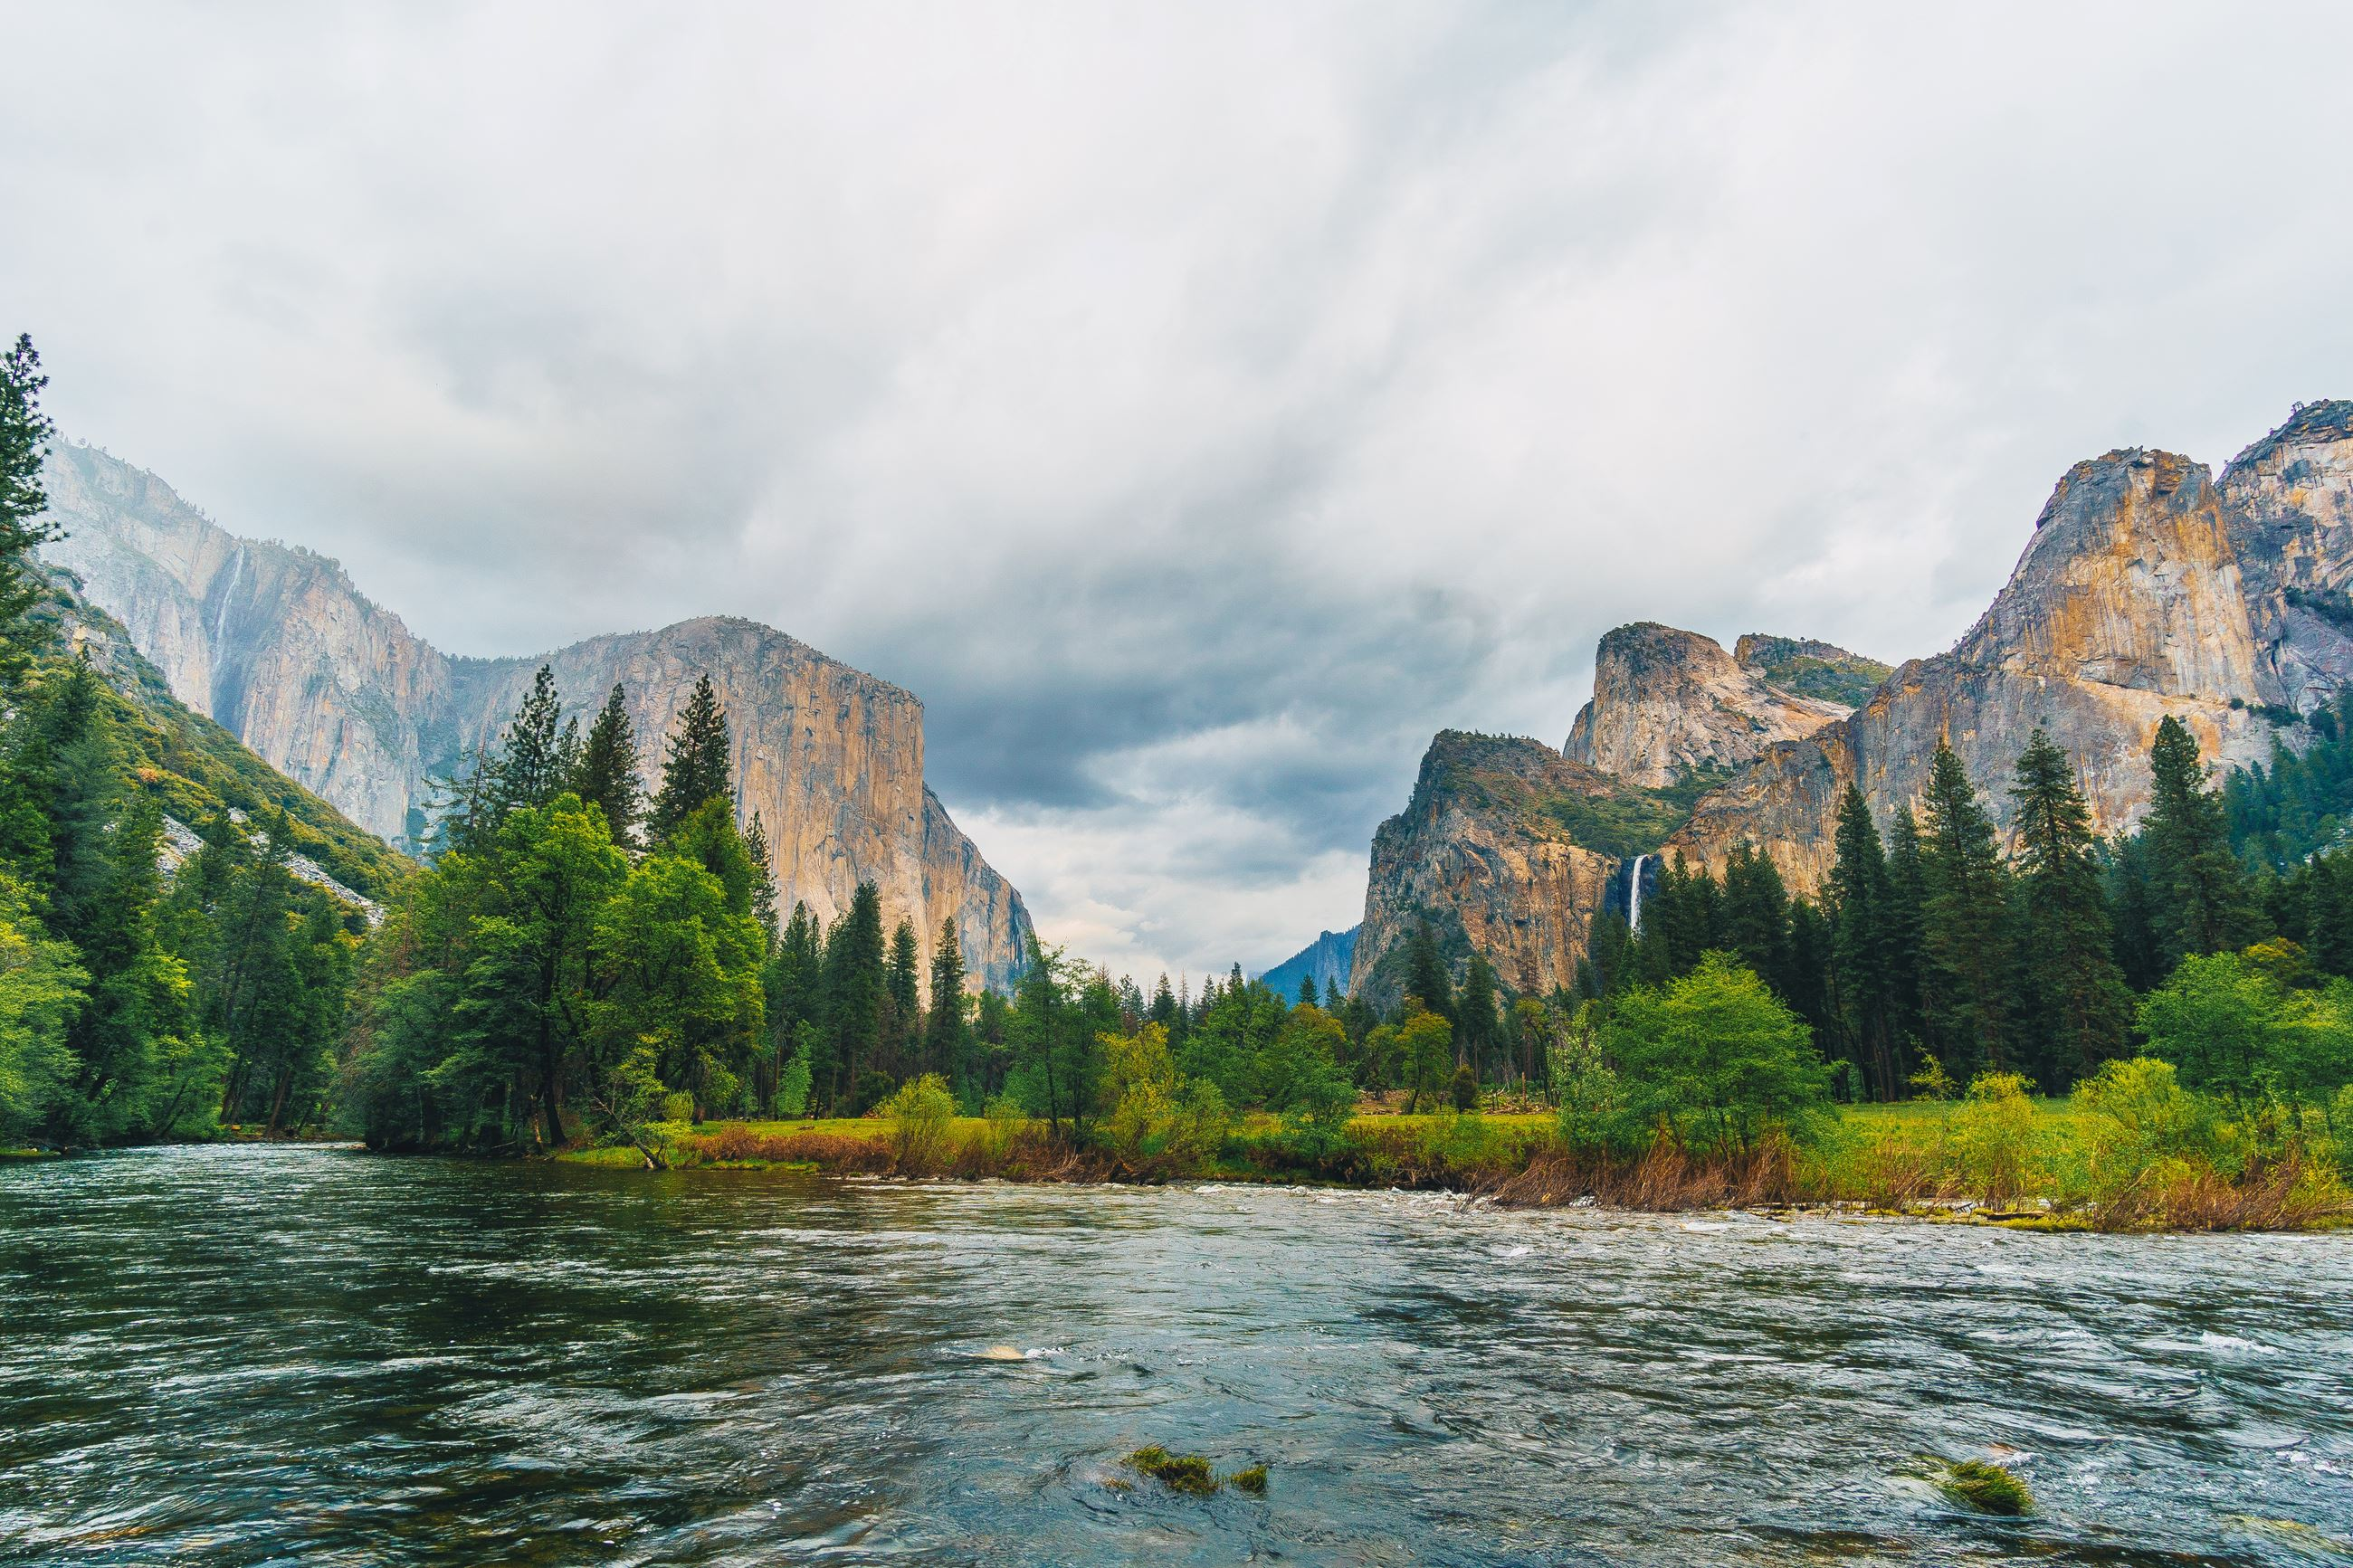 An image of the Yosemite Valley with the Merced River in the middle, El Capitan on the left and Half